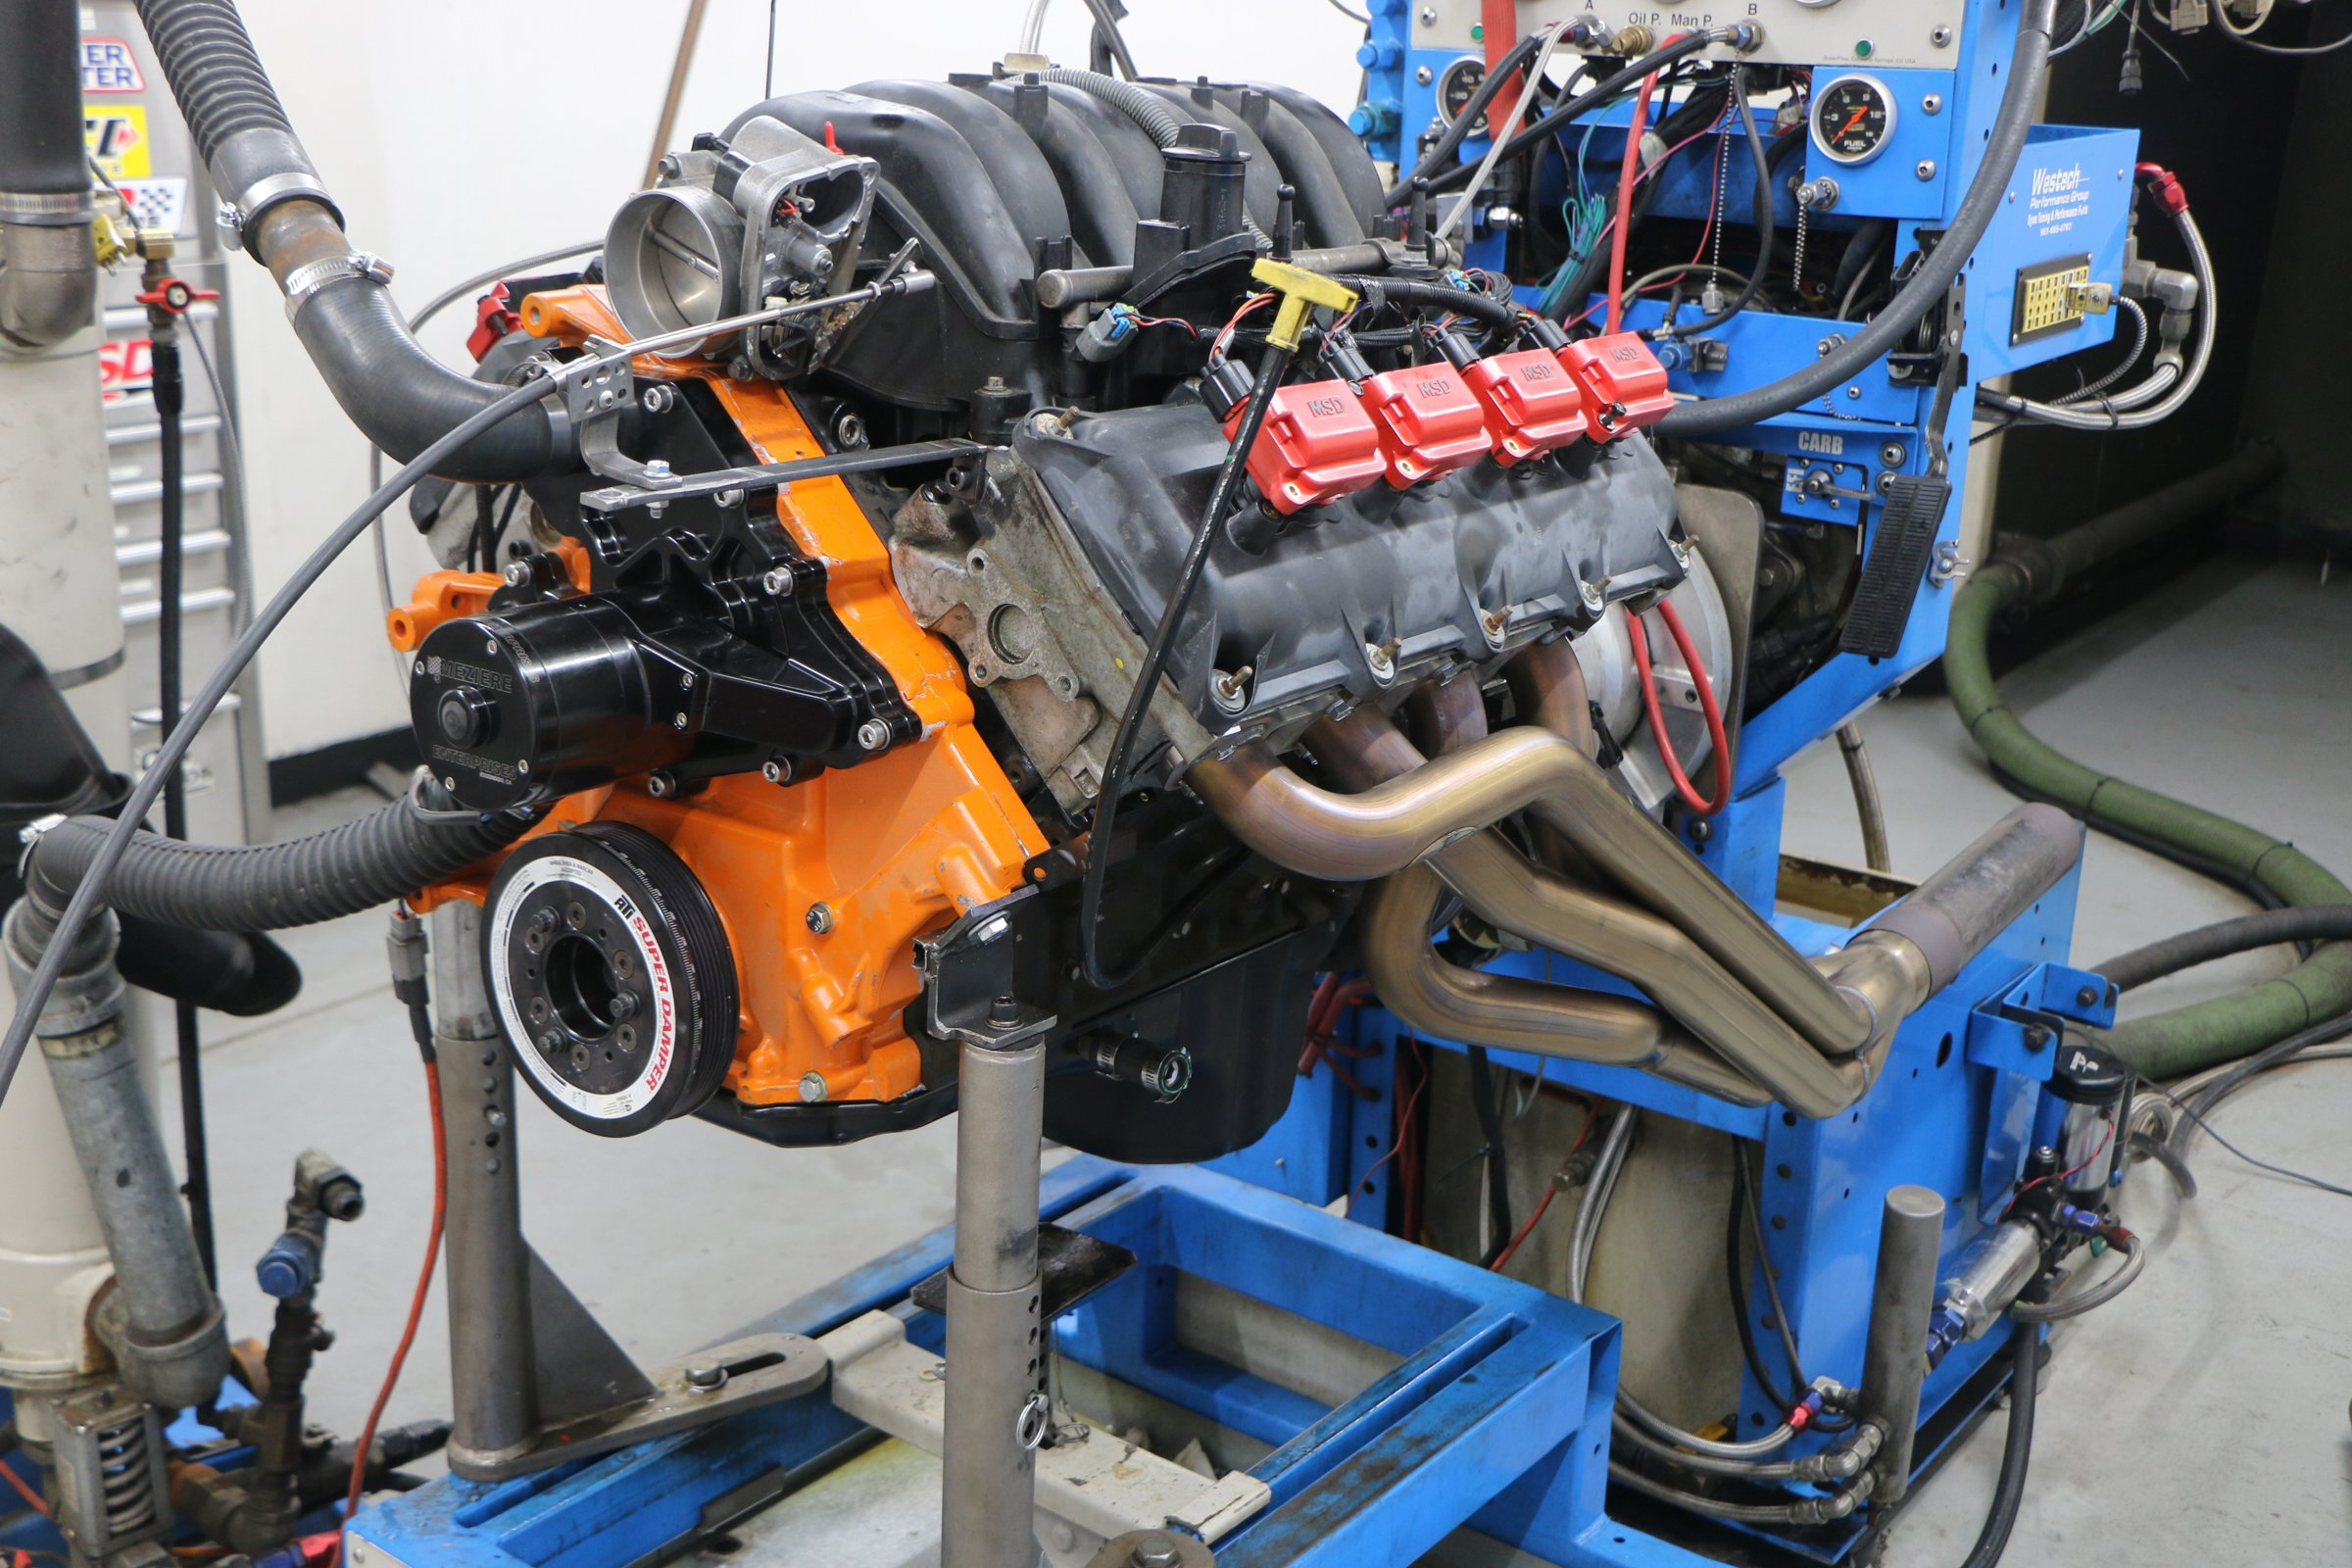 5.7L Hemi header test: 1 7/8 primary tubes